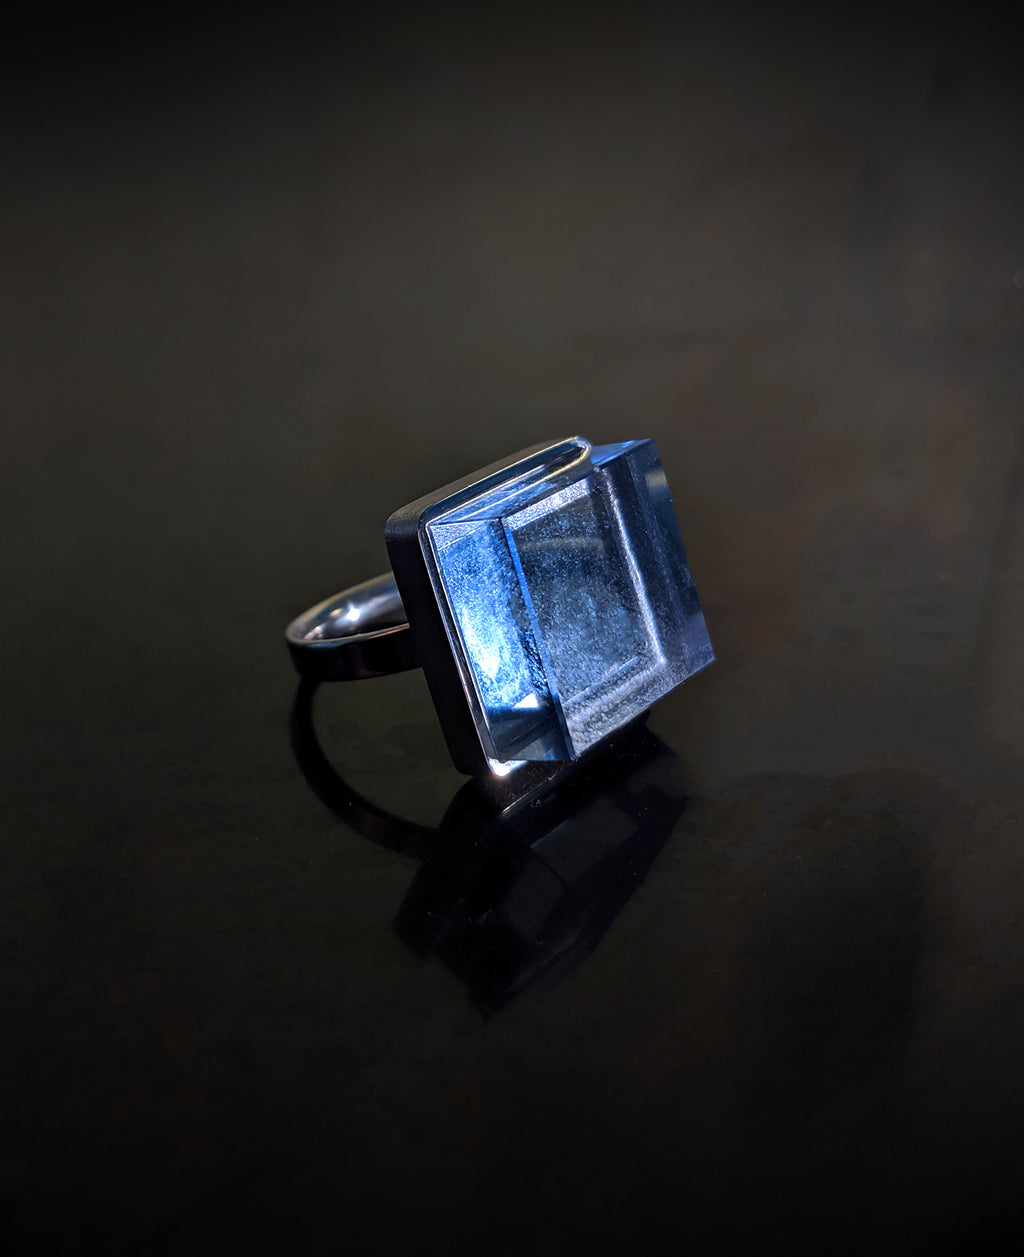 Sterling Silver Art Deco Ink Ring with Blue Quartz by Artist